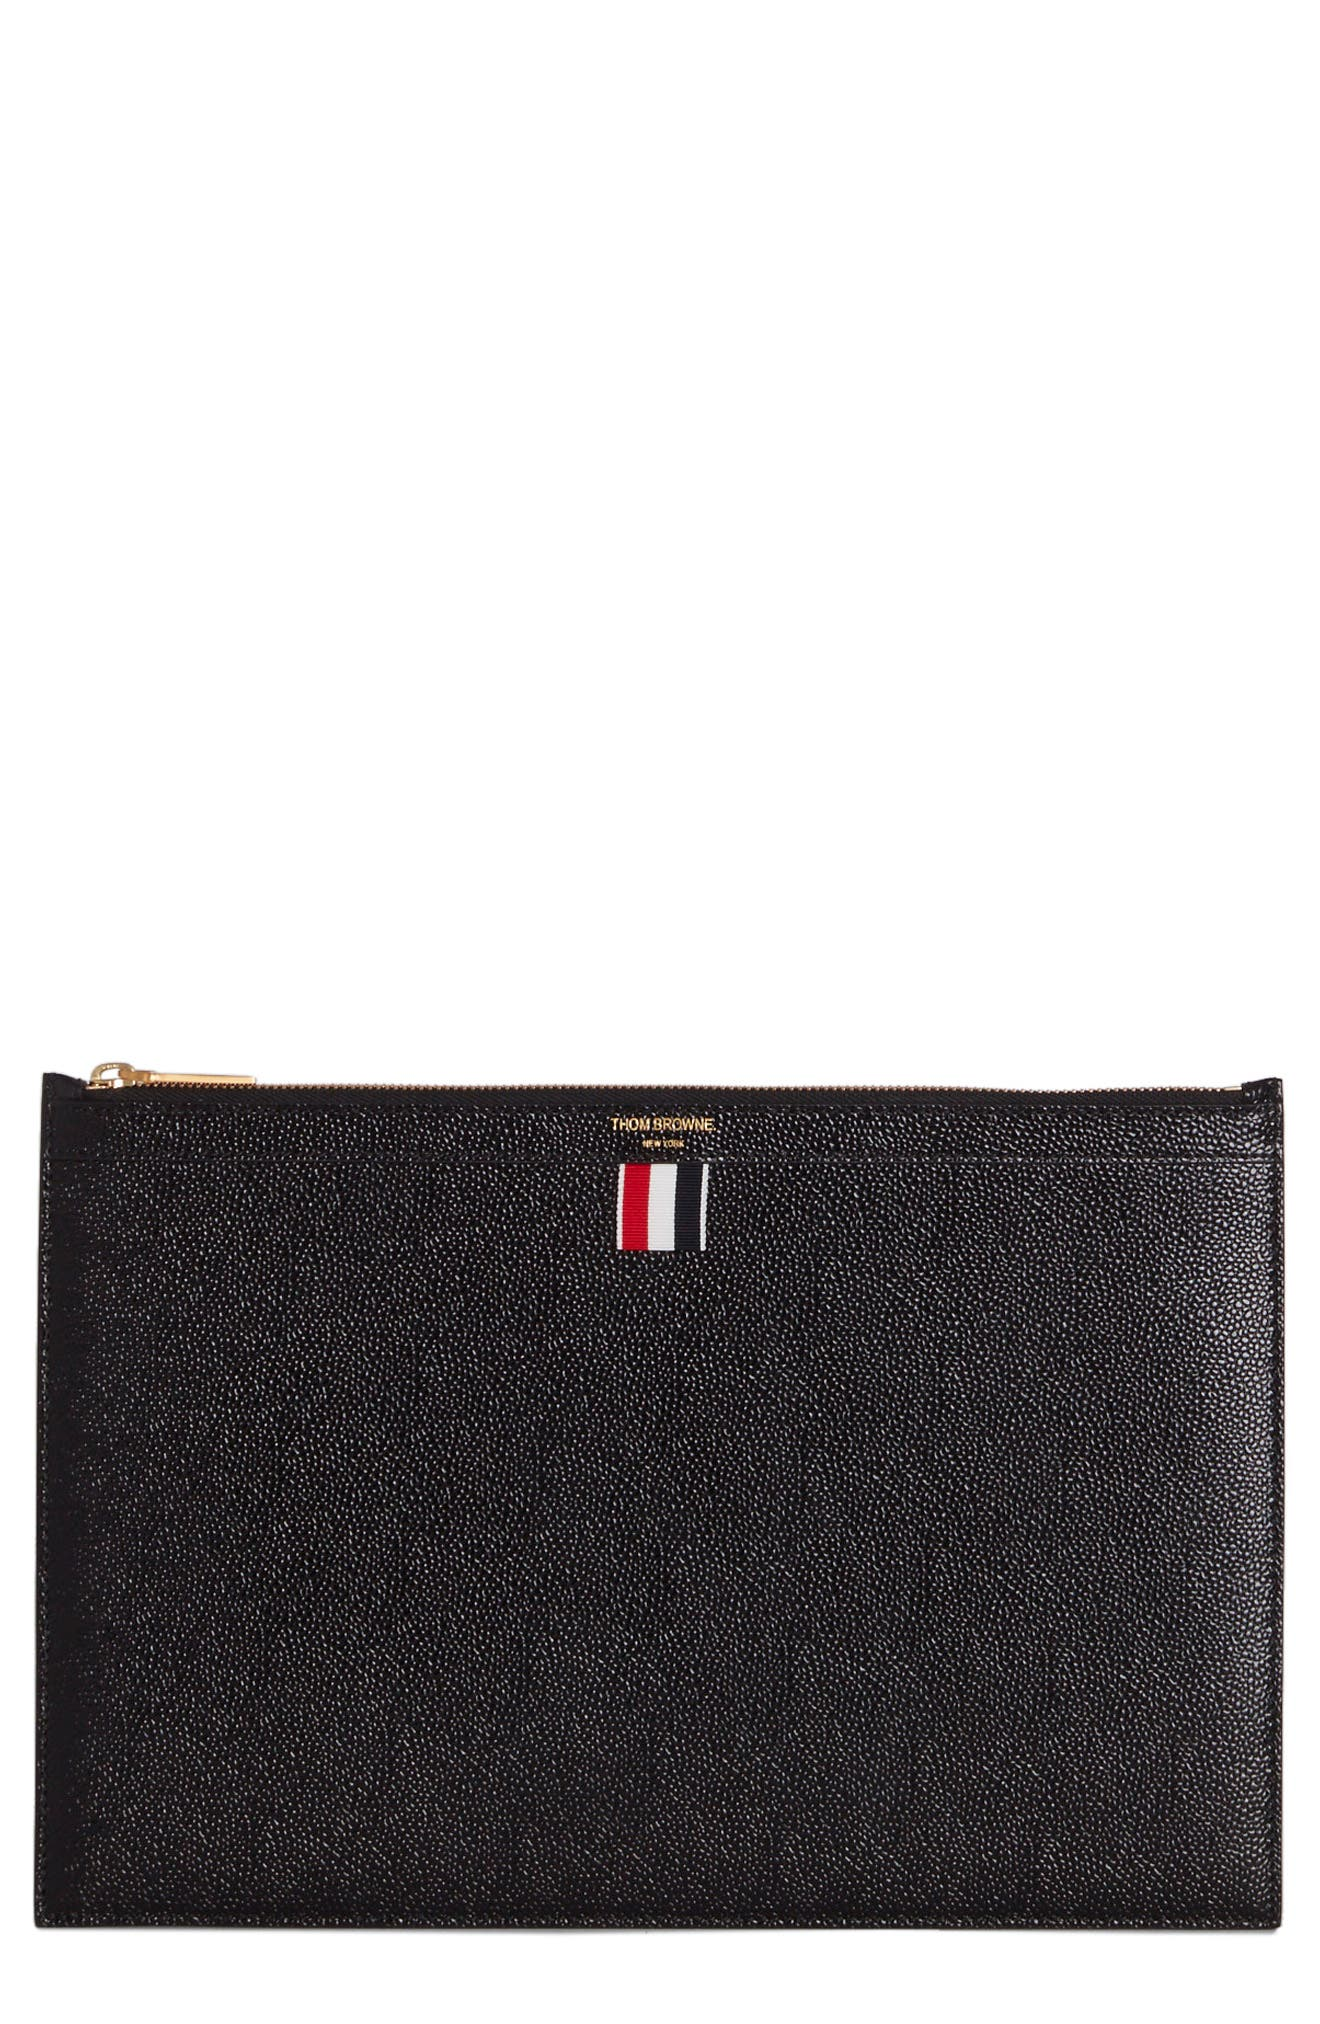 THOM BROWNE Leather Zip Folio Pouch, Main, color, BLACK